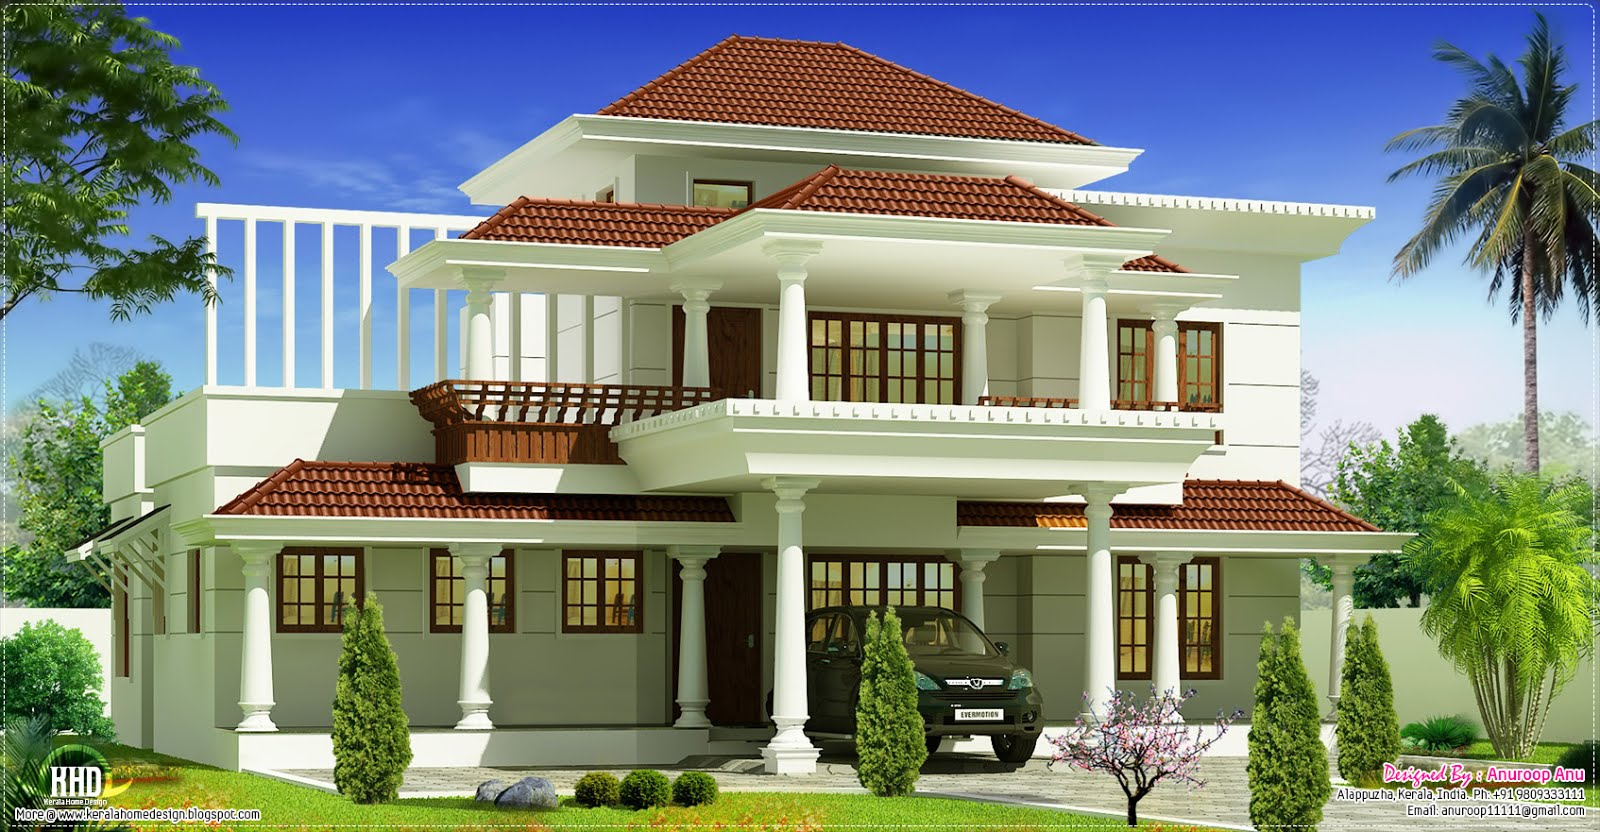 January 2013 kerala home design and floor plans for Interior design ideas for small homes in kerala